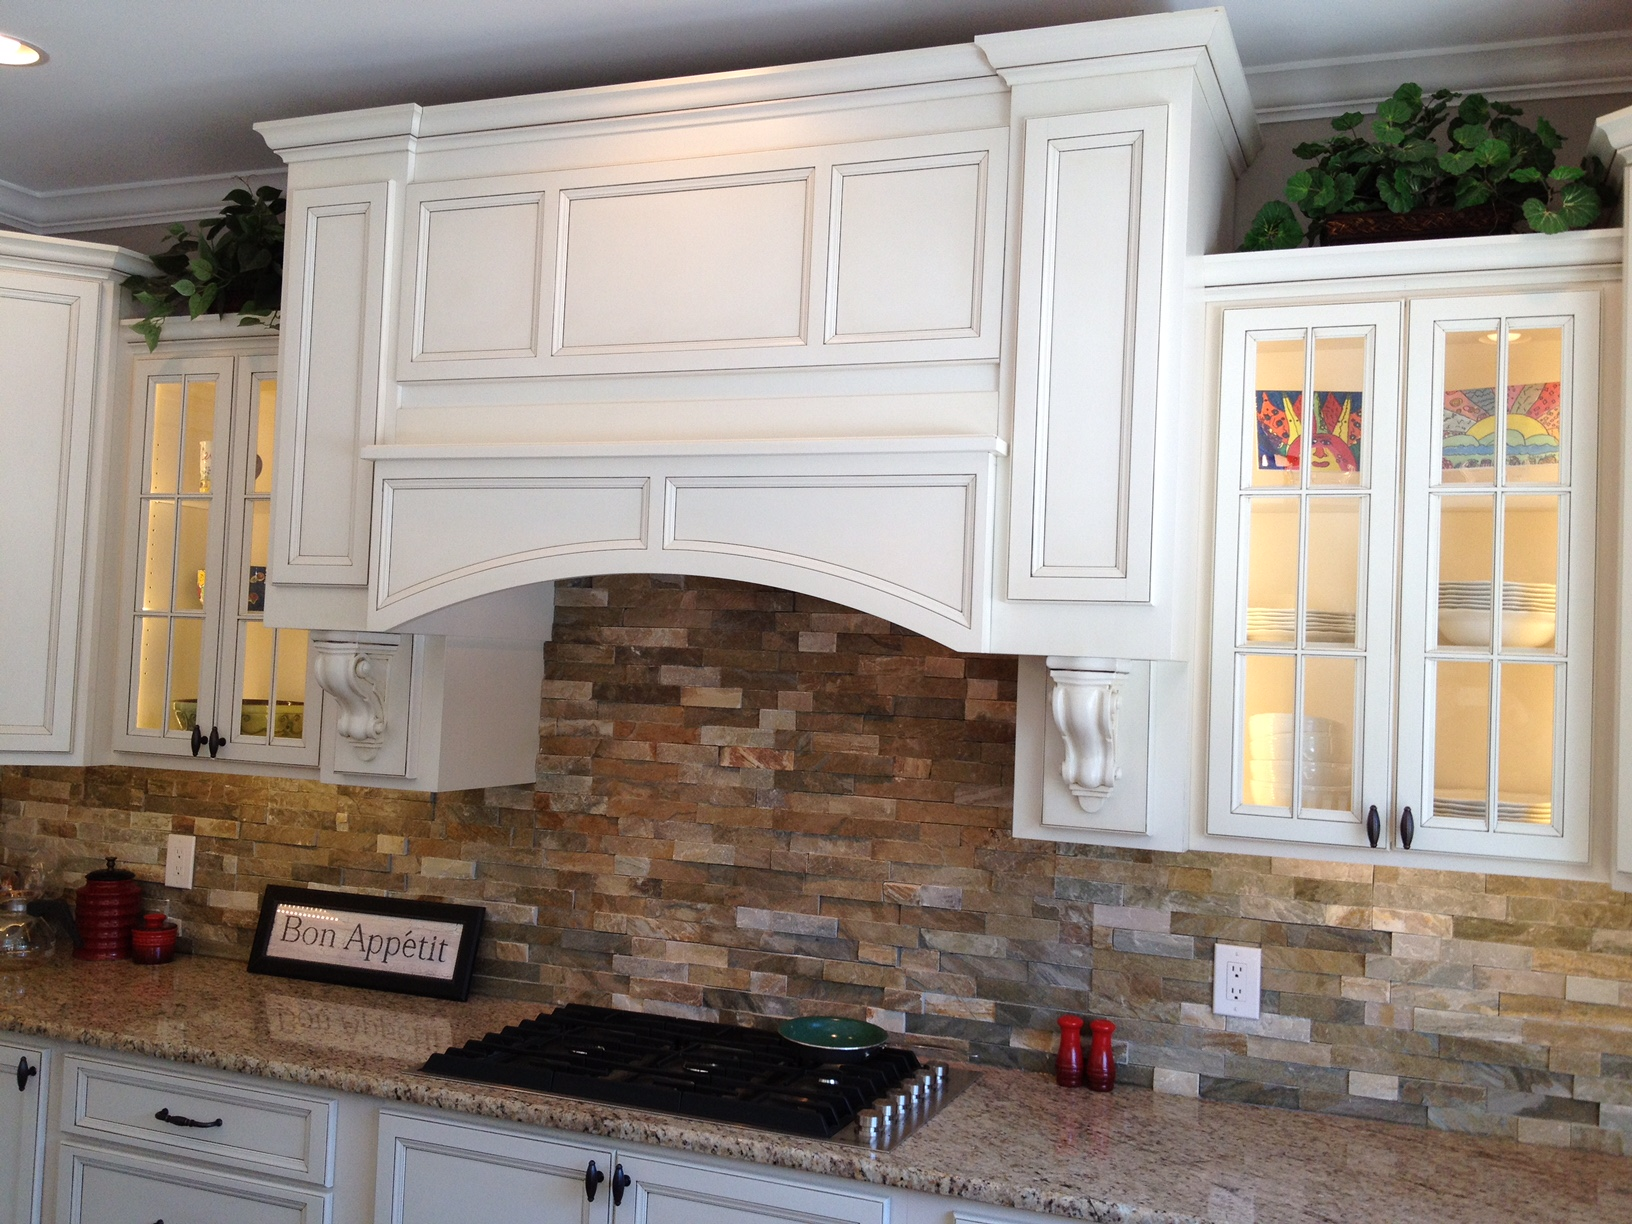 Hidden Range Hood with Cabinet Blanks